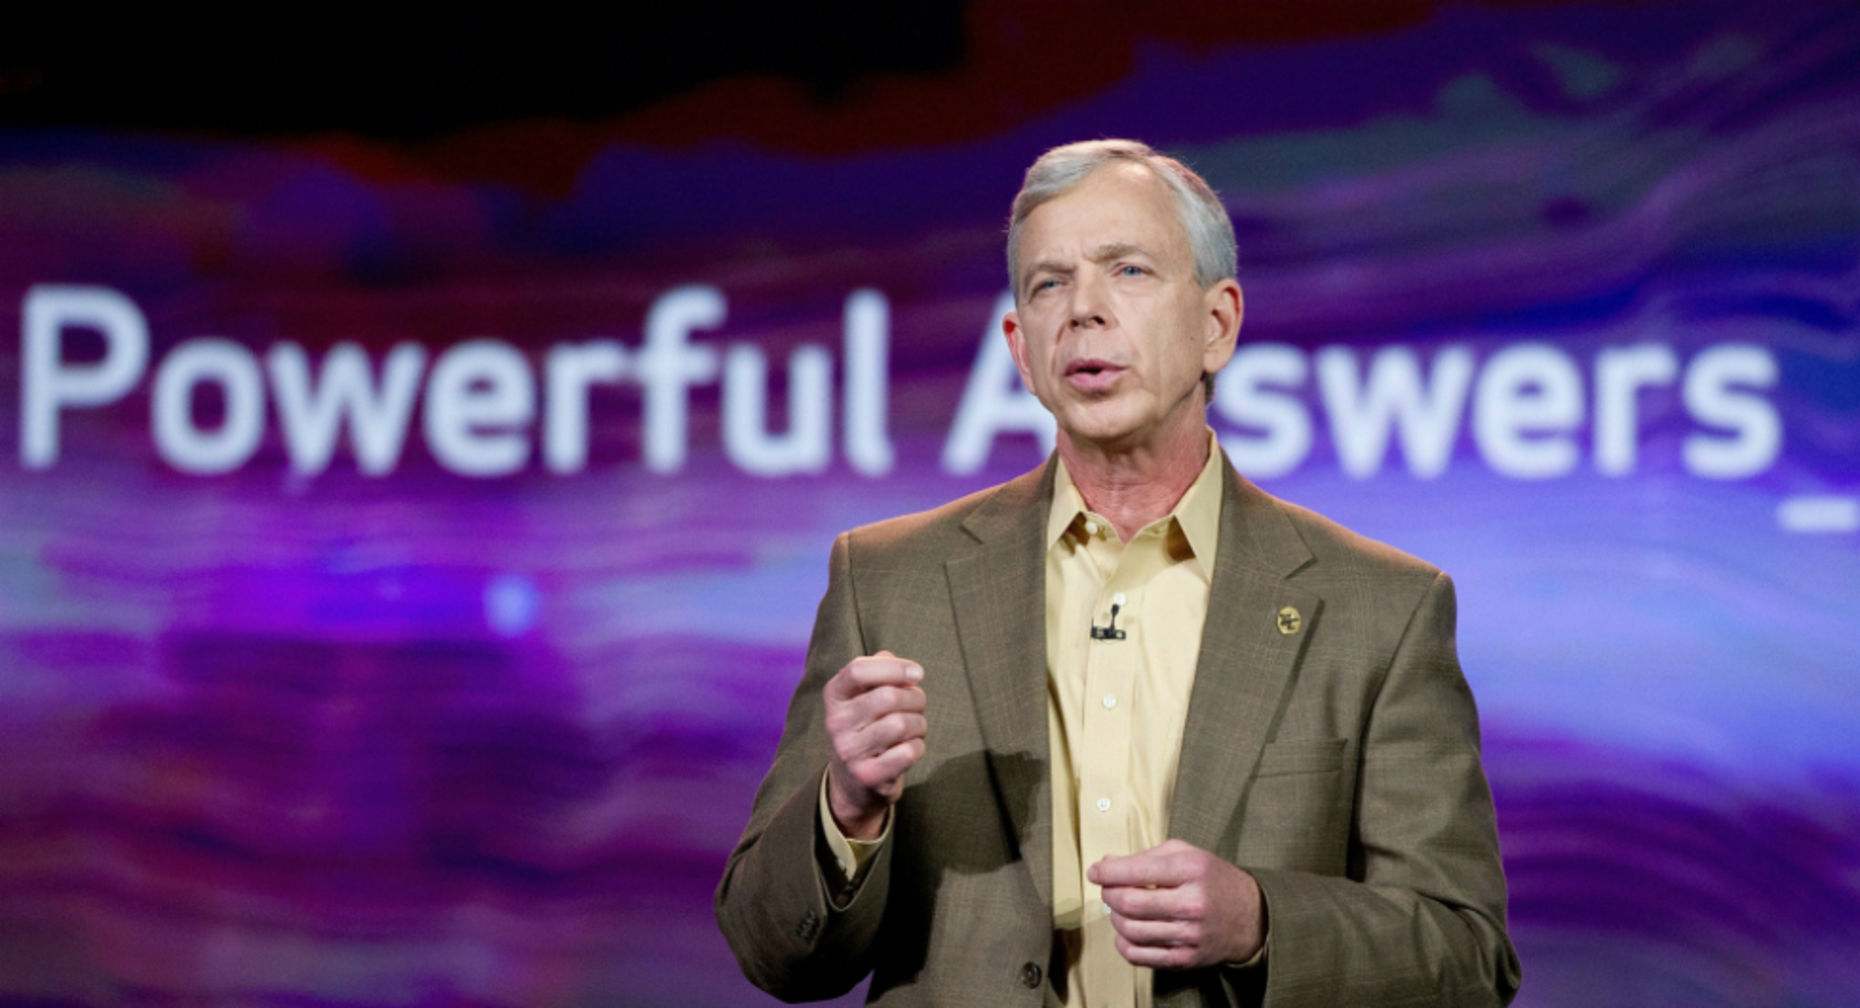 Verizon Communications CEO Lowell McAdam. Photo by Bloomberg.